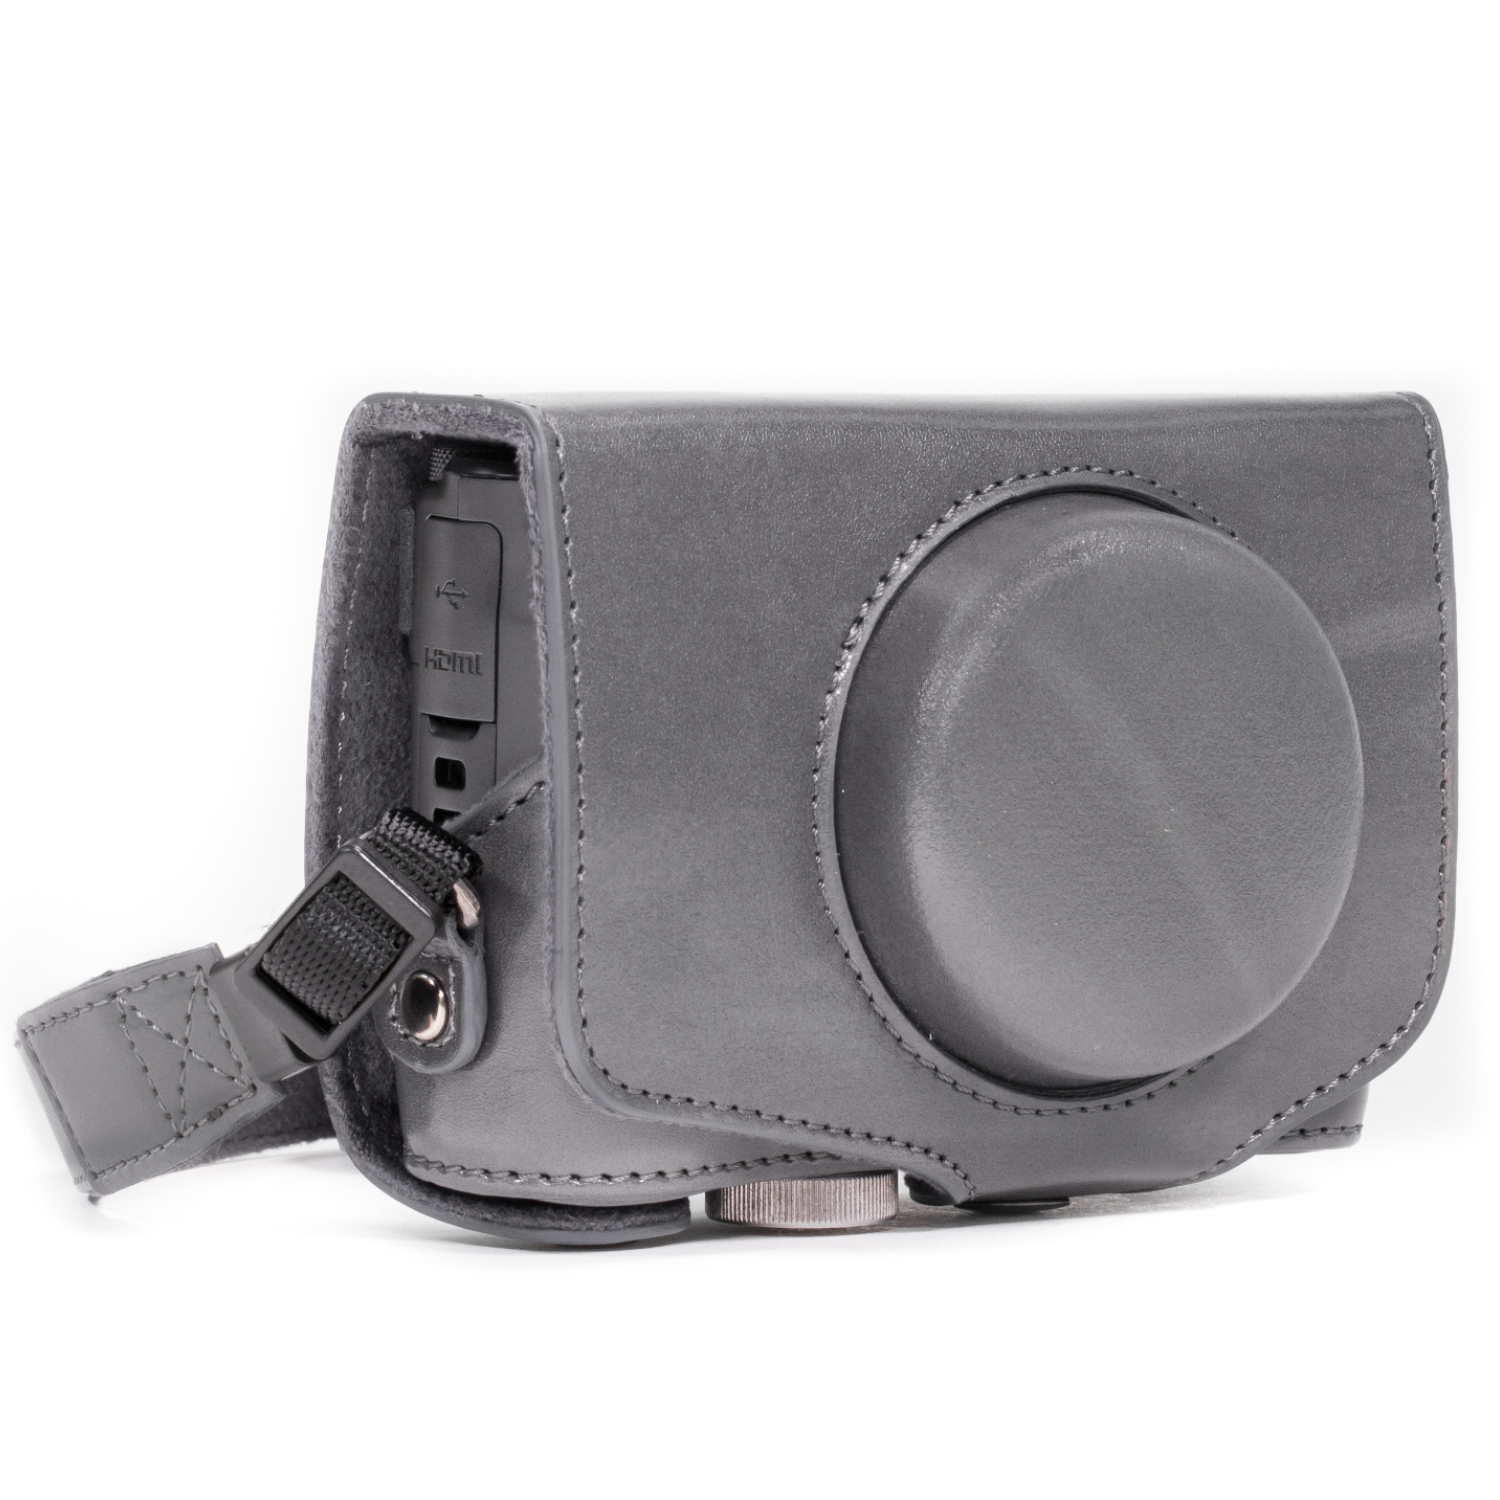 Megagear Canon Powershot Sx720 Hs Ever Ready Leather Camera Case Digital With Strap Gray Mg678